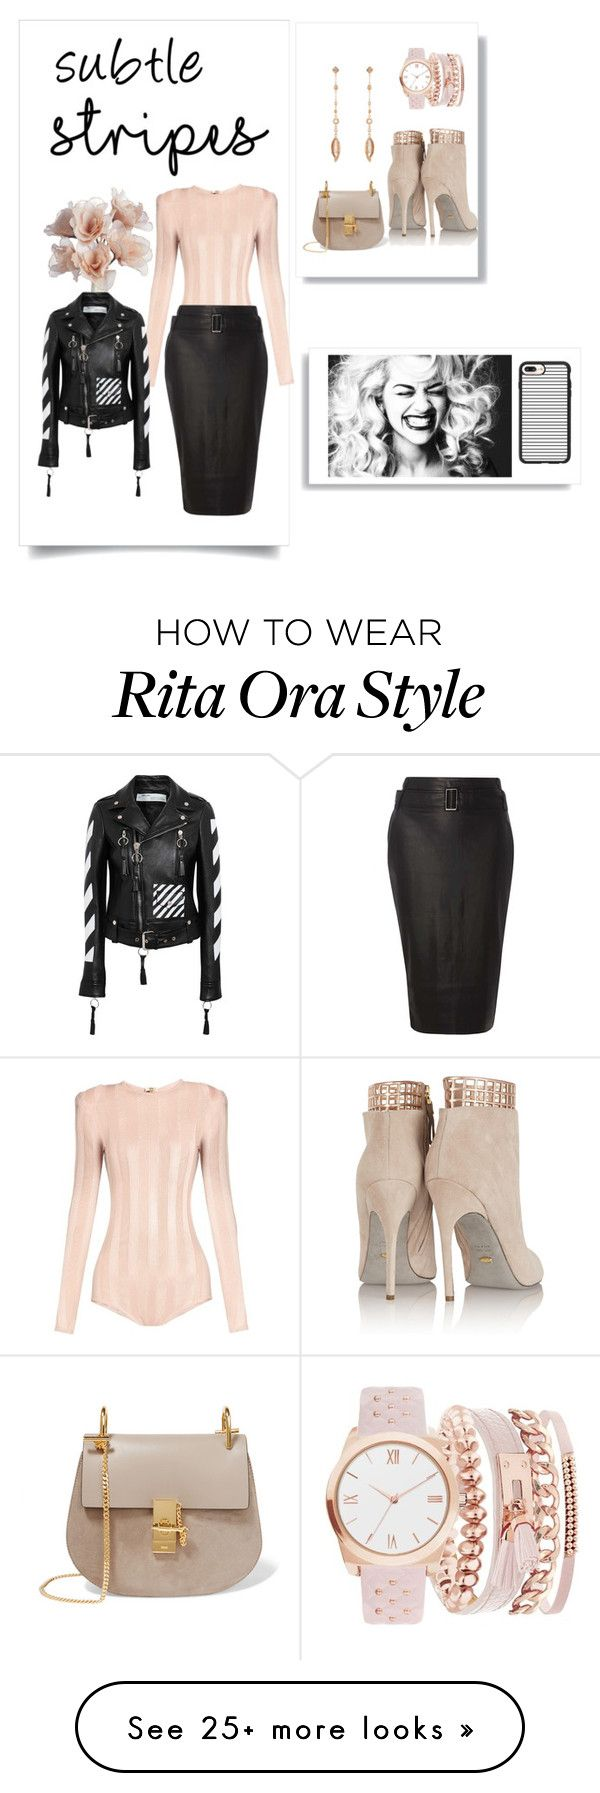 """""""striped divas"""" by jessicad110916 on Polyvore featuring Balmain, Dorothy Perkins, Kendra Scott, A.X.N.Y., Chloé, Sergio Rossi, Casetify and Off-White"""